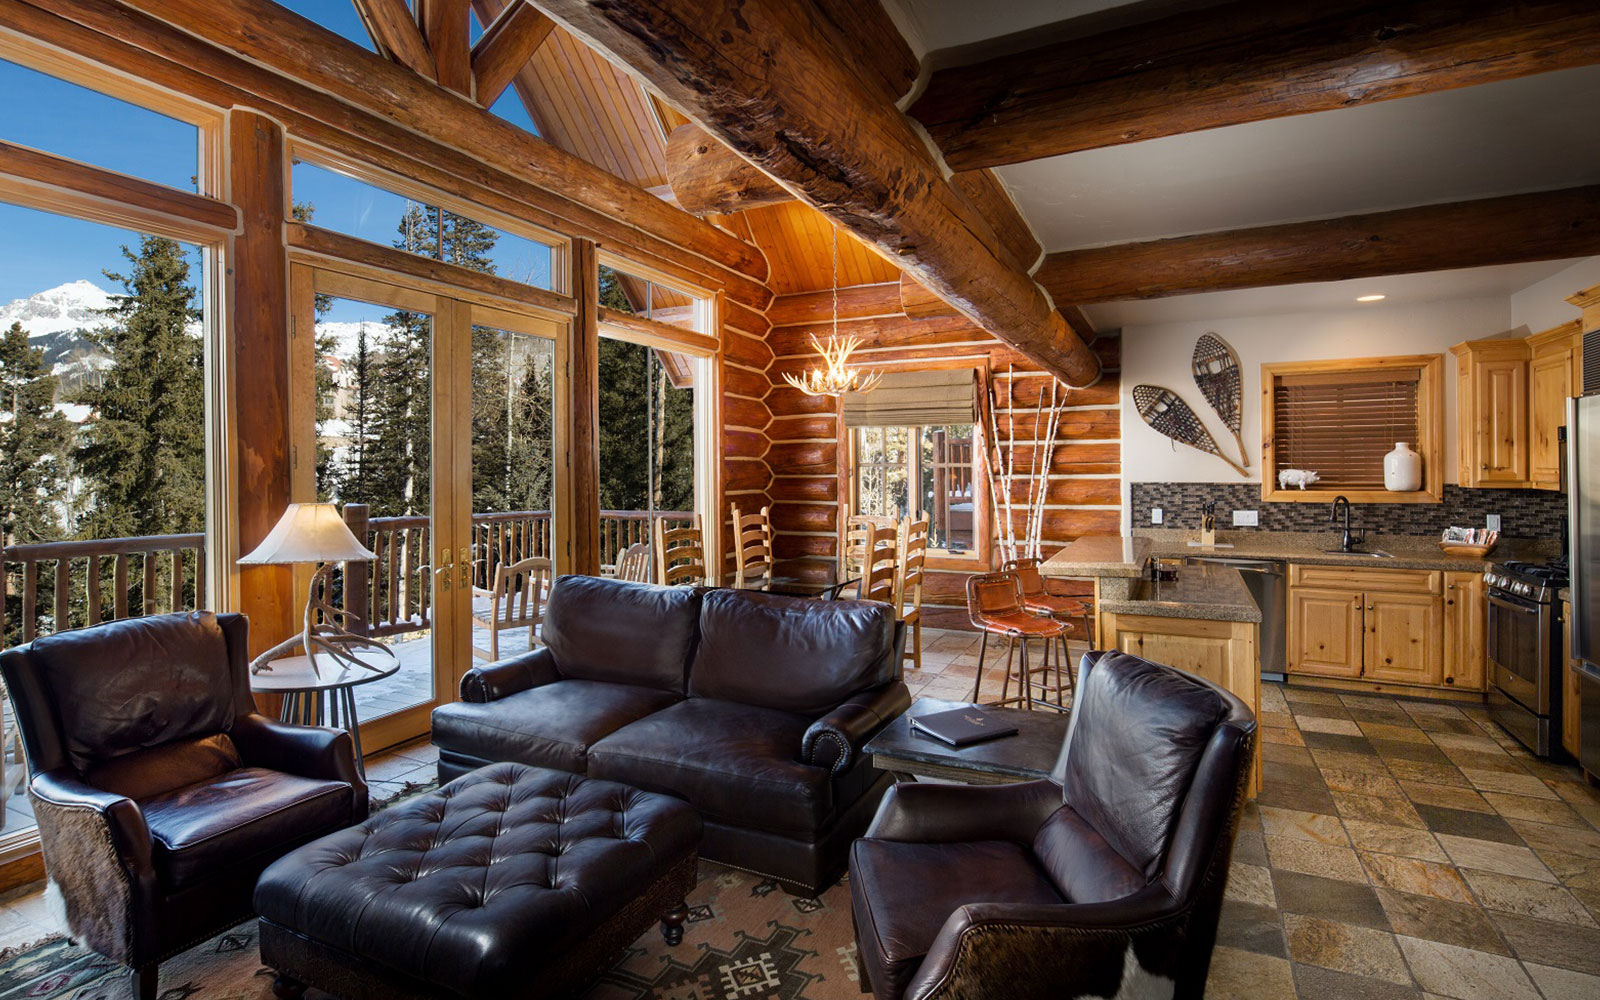 Luxury log cabins in telluride co mountain lodge telluride for Luxury winter cabins